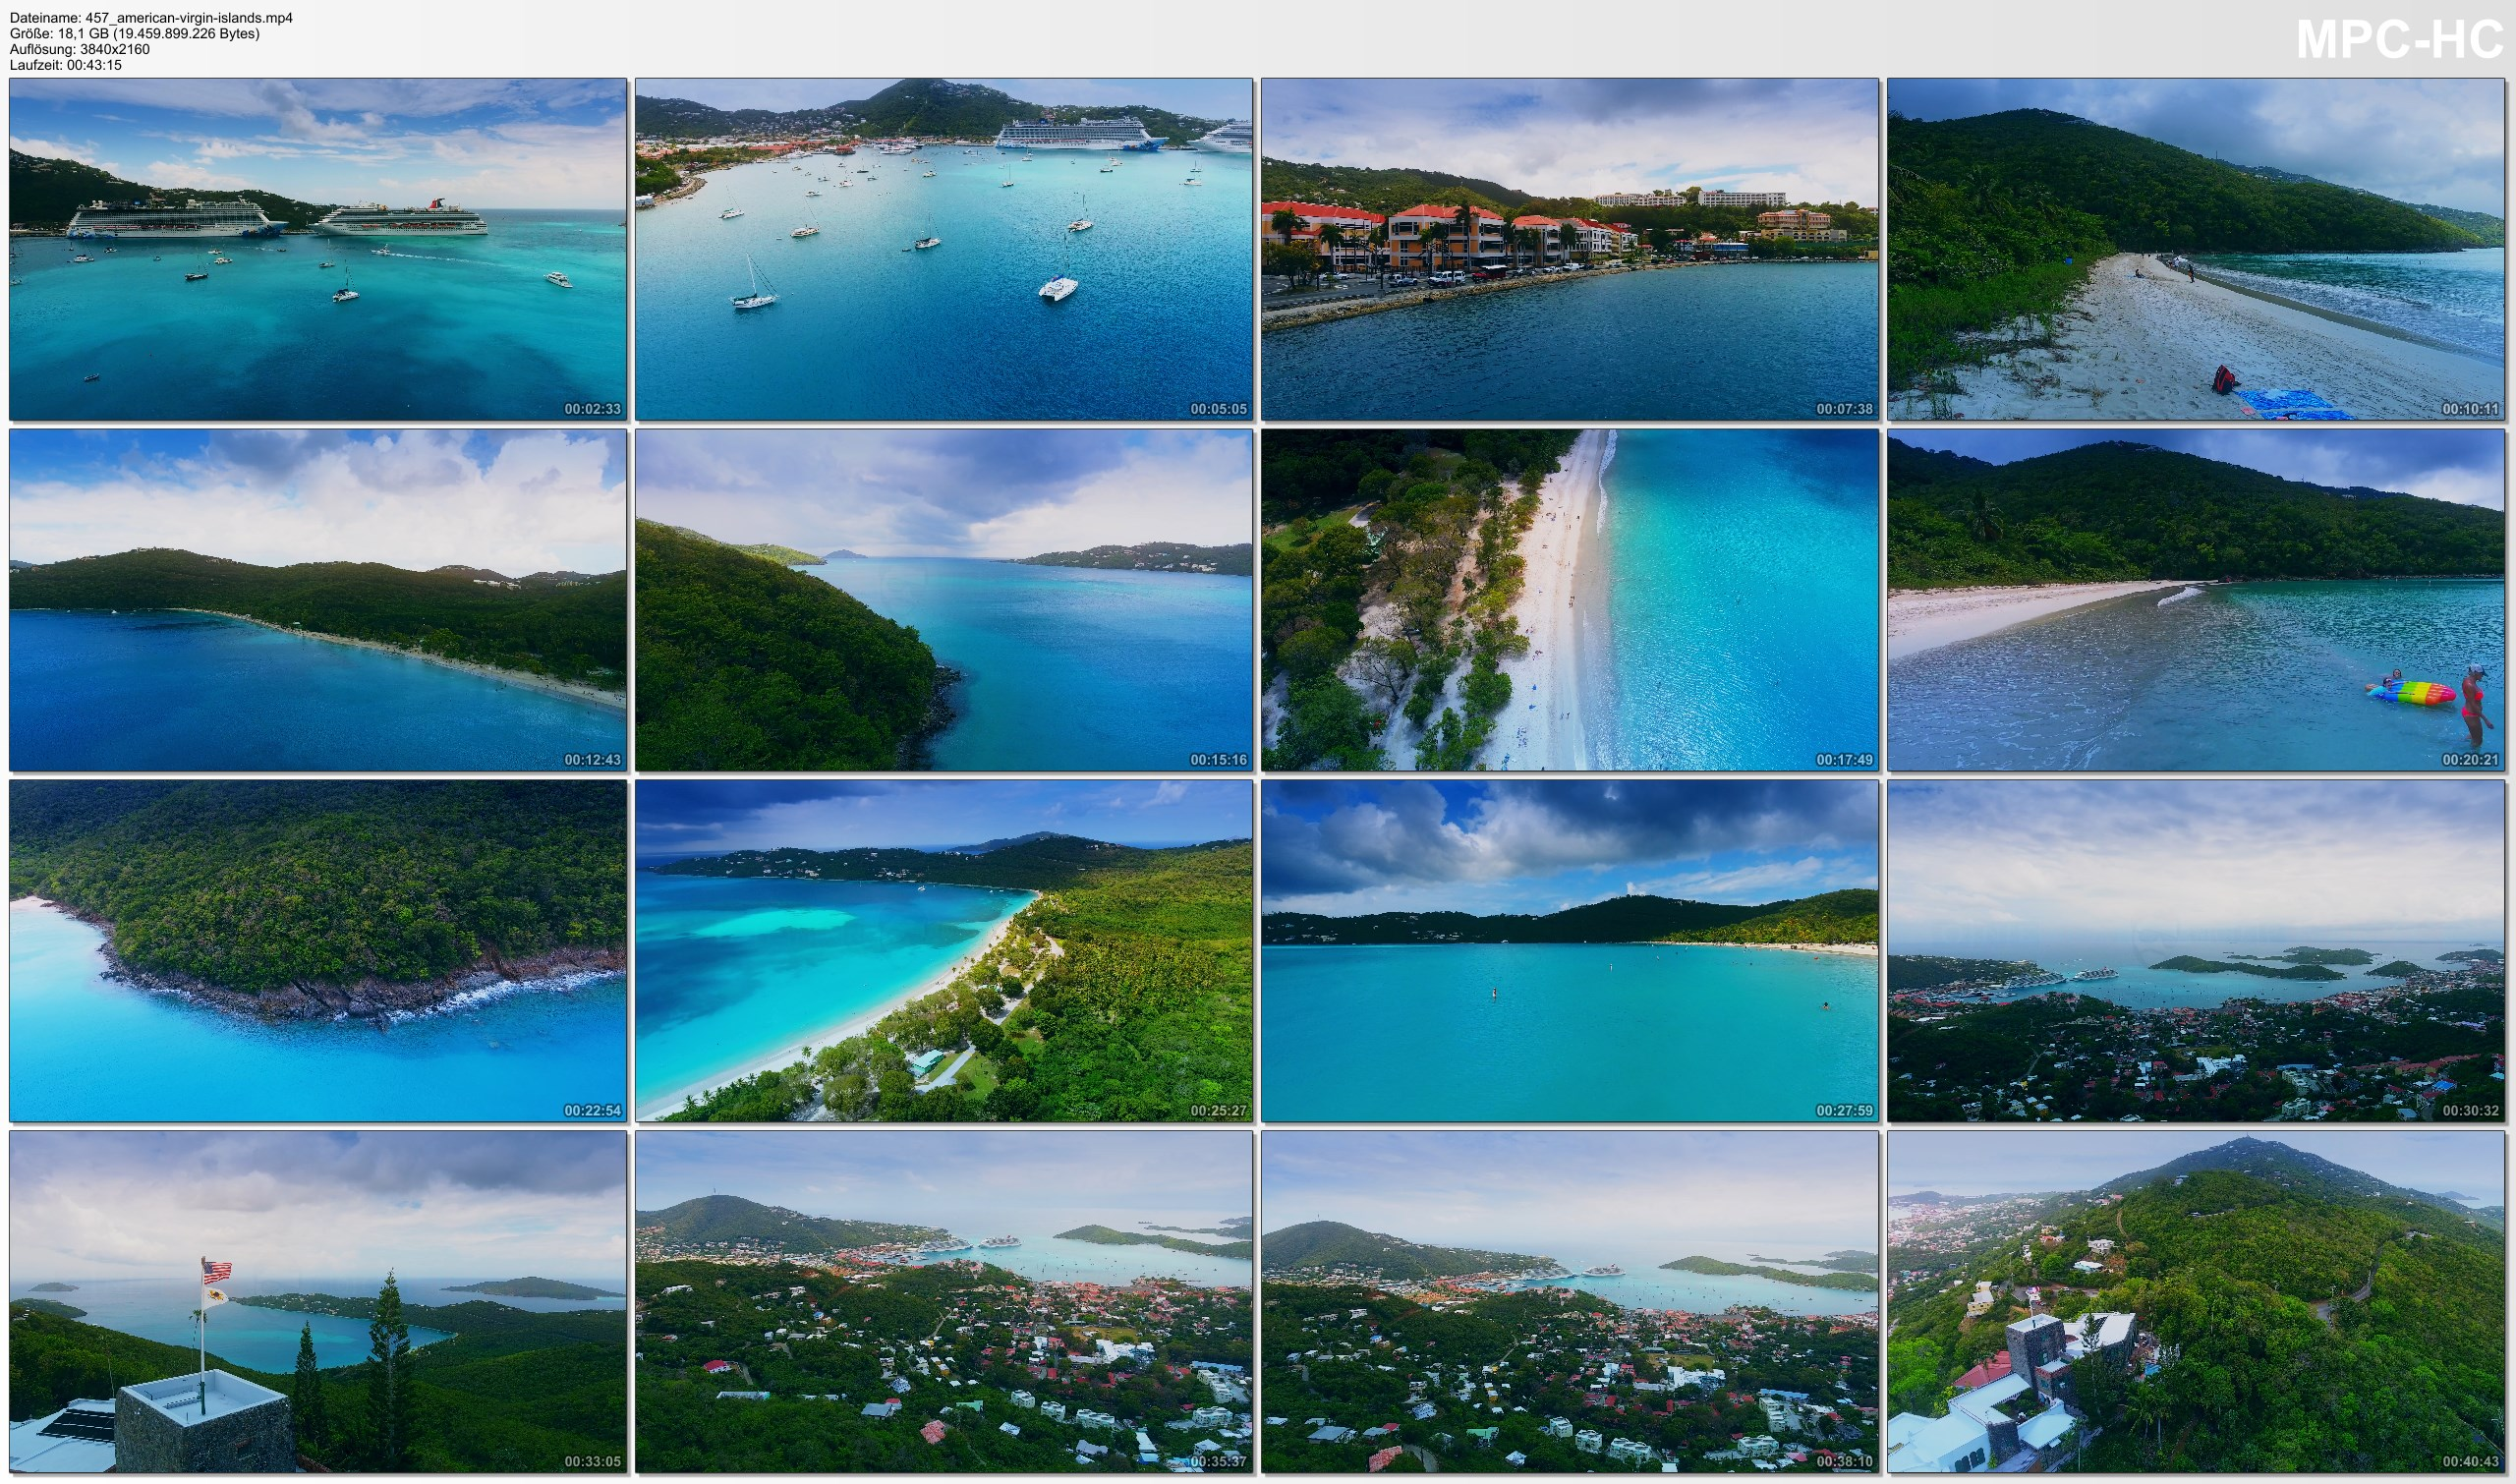 Drone Pictures from Video 【4K】Drone RAW Footage | These are the AMERICAN VIRGIN ISLANDS 2020 | U.S. Thomas UltraHD Stock Video